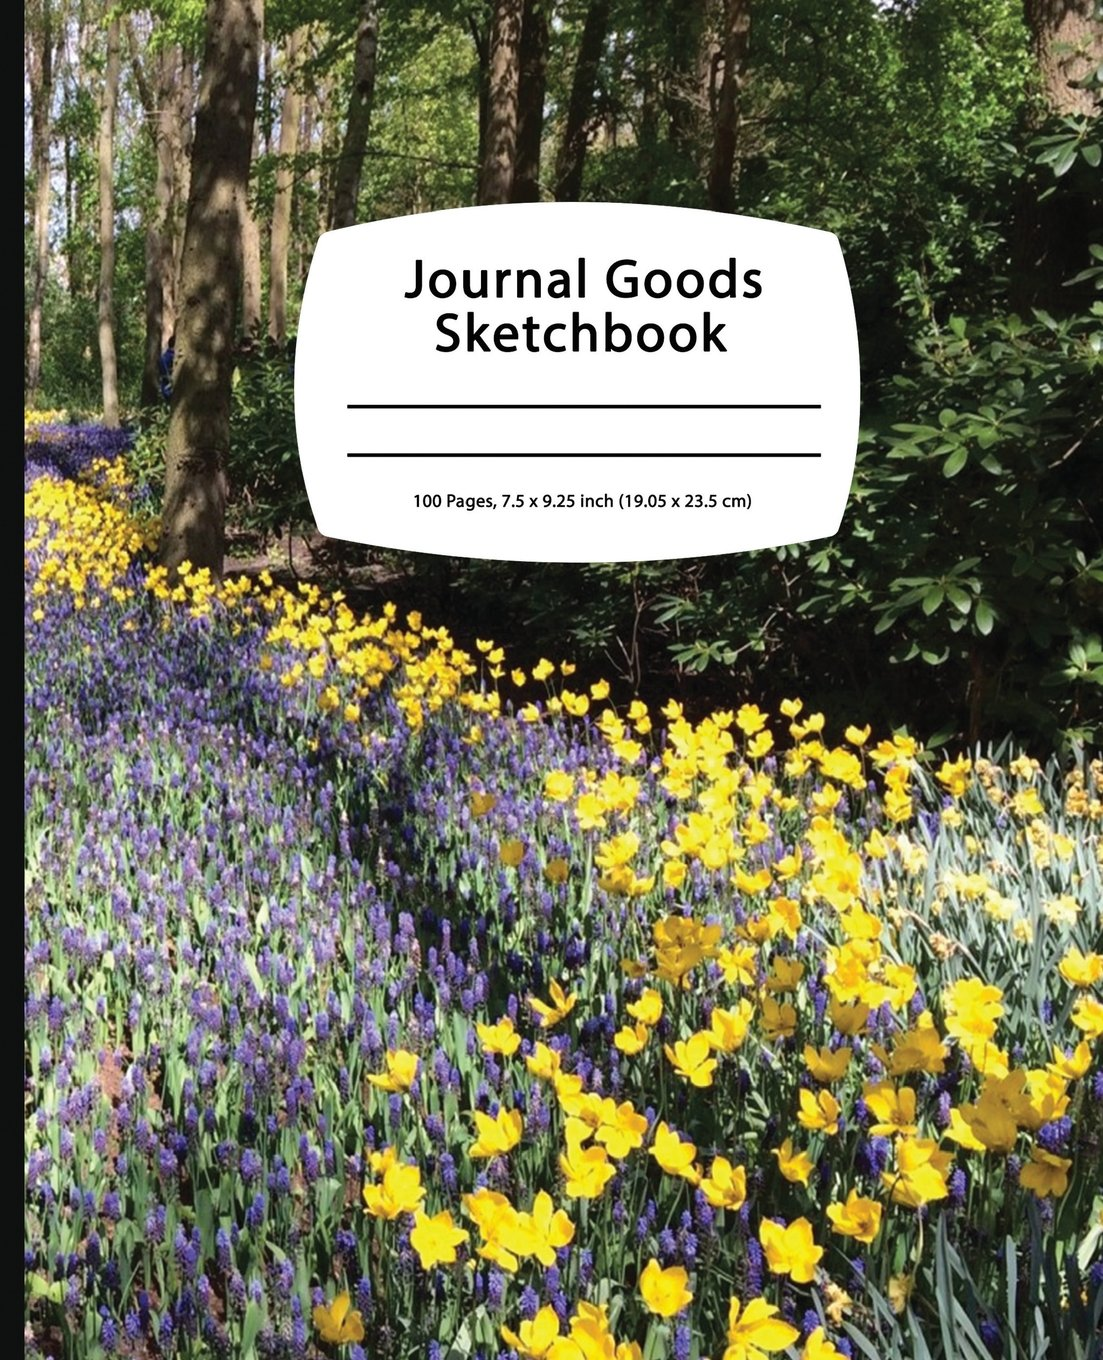 Download Journal Goods Sketchbook - Flower Road: 7.5 x 9.25, Large Sketchbook Journal Drawing Book, 100 Pages For Sketching, Bullet Journal, Notes and More (Durable Cover) ebook